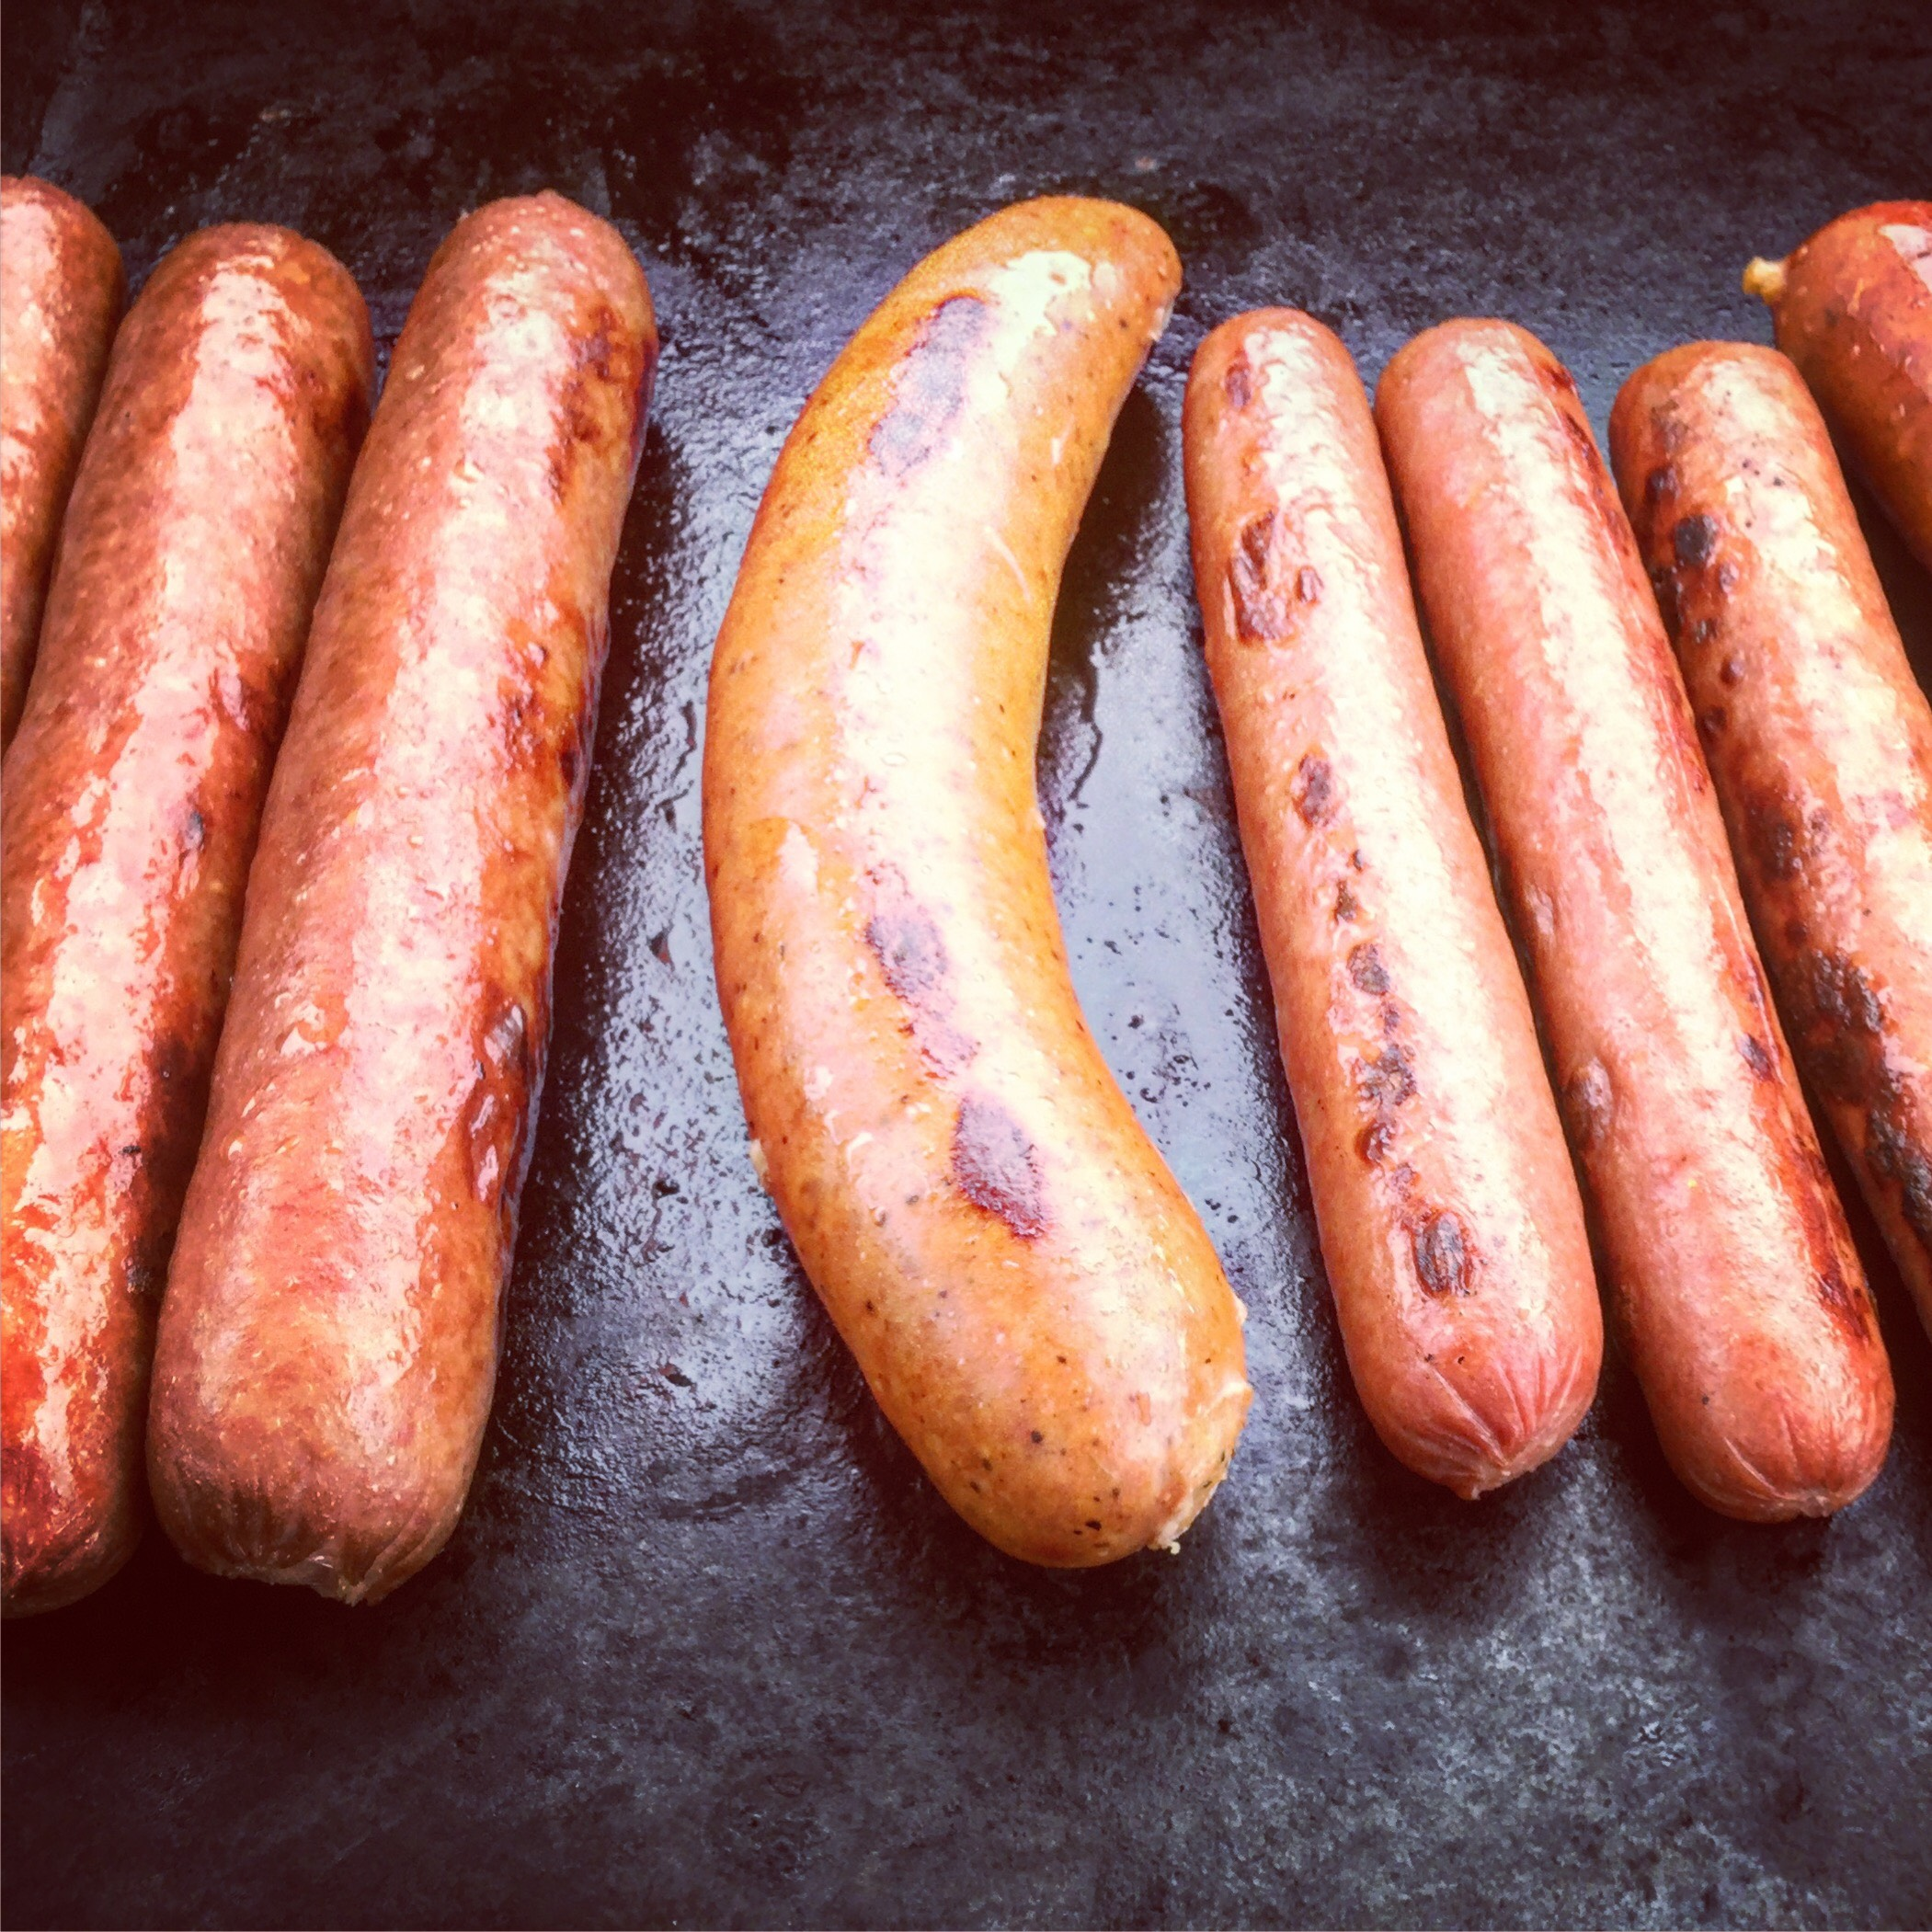 The large brat… in the middle.